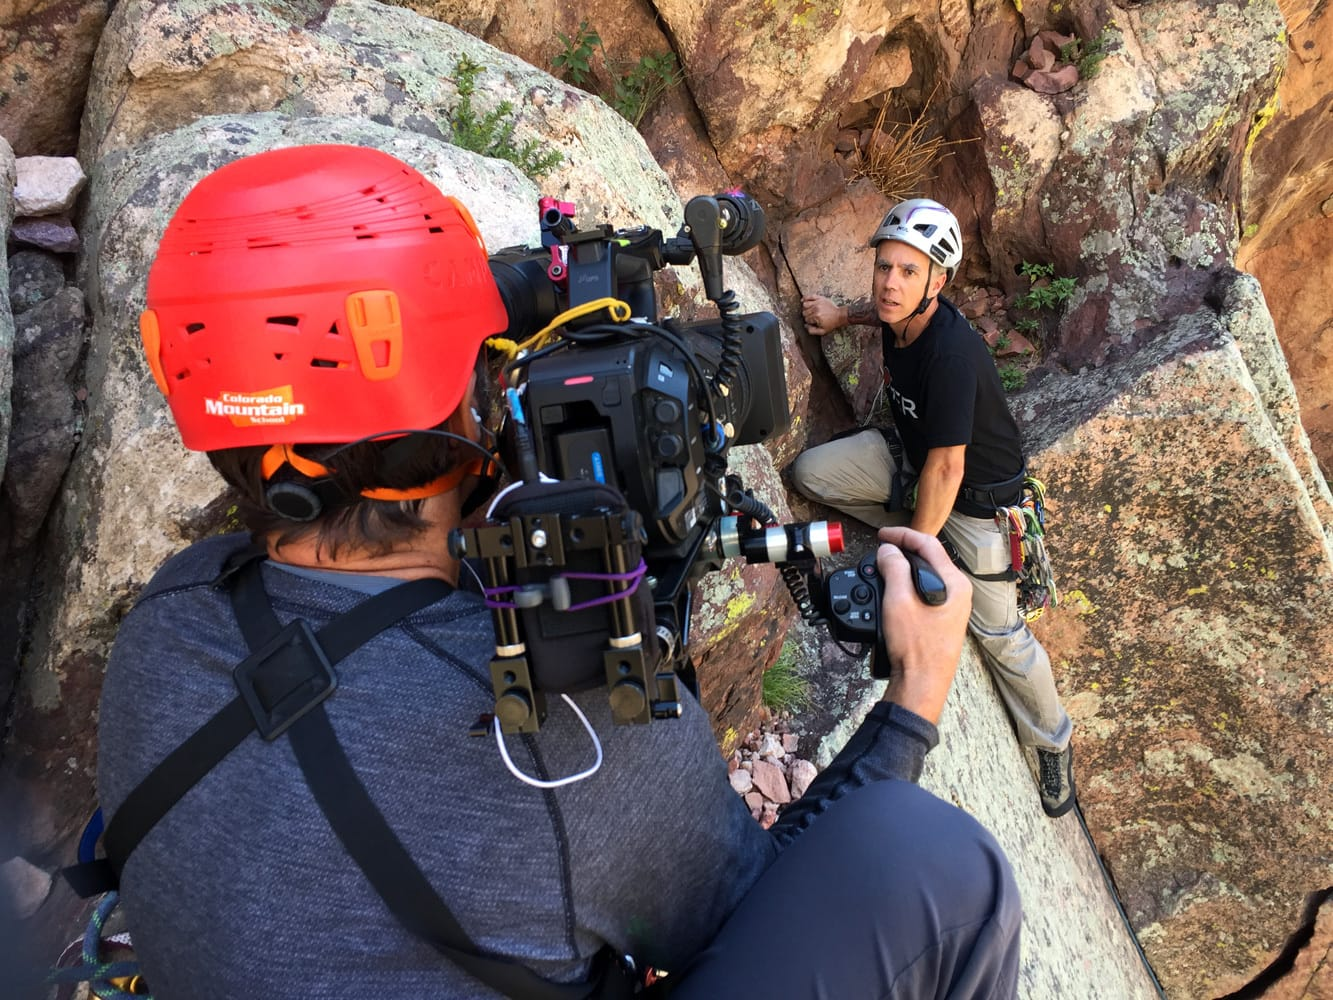 Videographer films a rock climber in Eldorado Canyon, near Boulder Colorado. Colorado Mountain School Guide stands back after safely rigging technical rope systems for the film shoot.